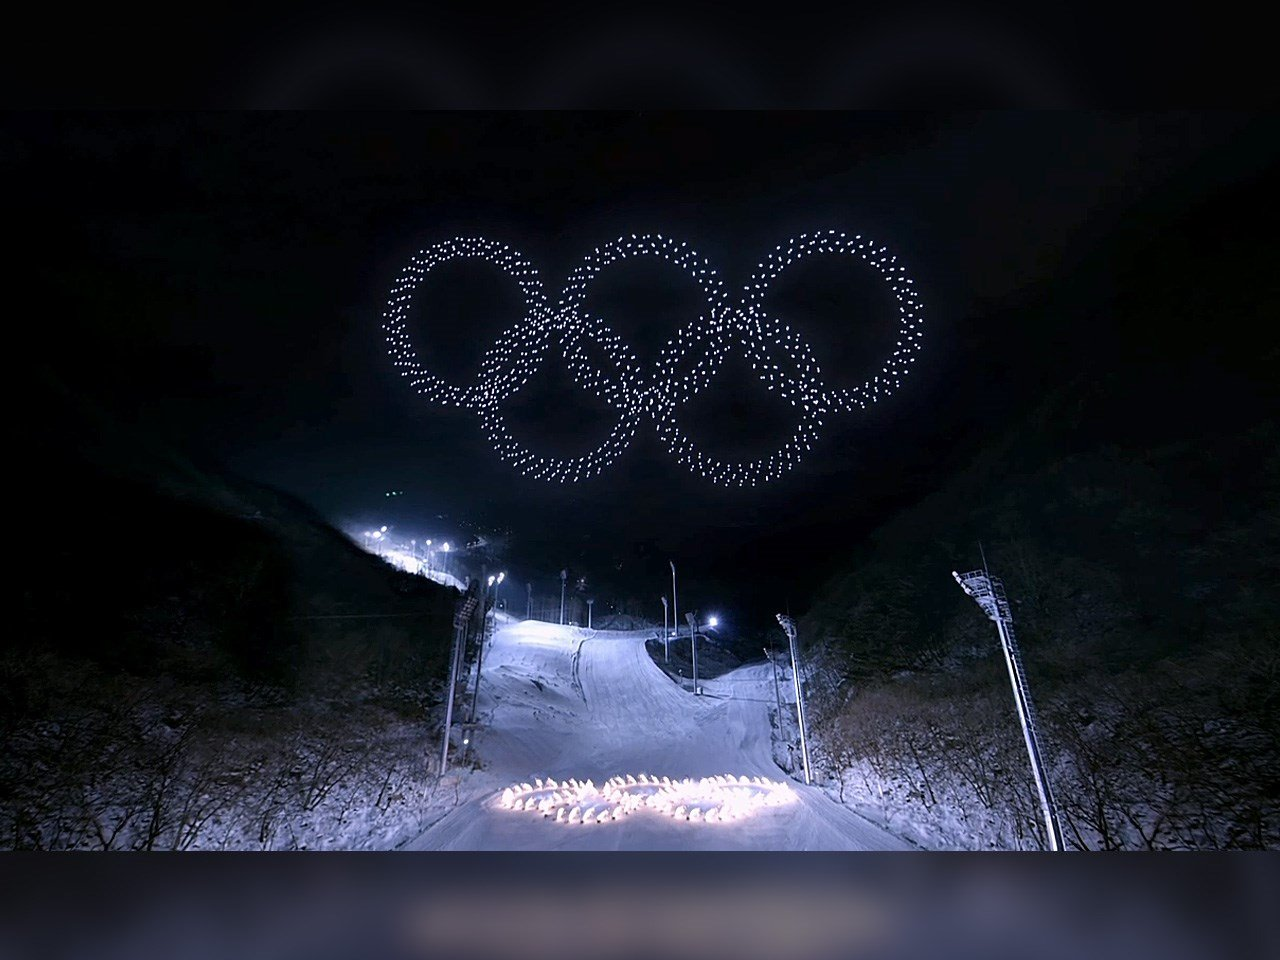 018 Winter Olympics Opening Ceremony in PyeongChang South Korea. Drones creating the Olympic rings in the air as skiers create them on the ground.